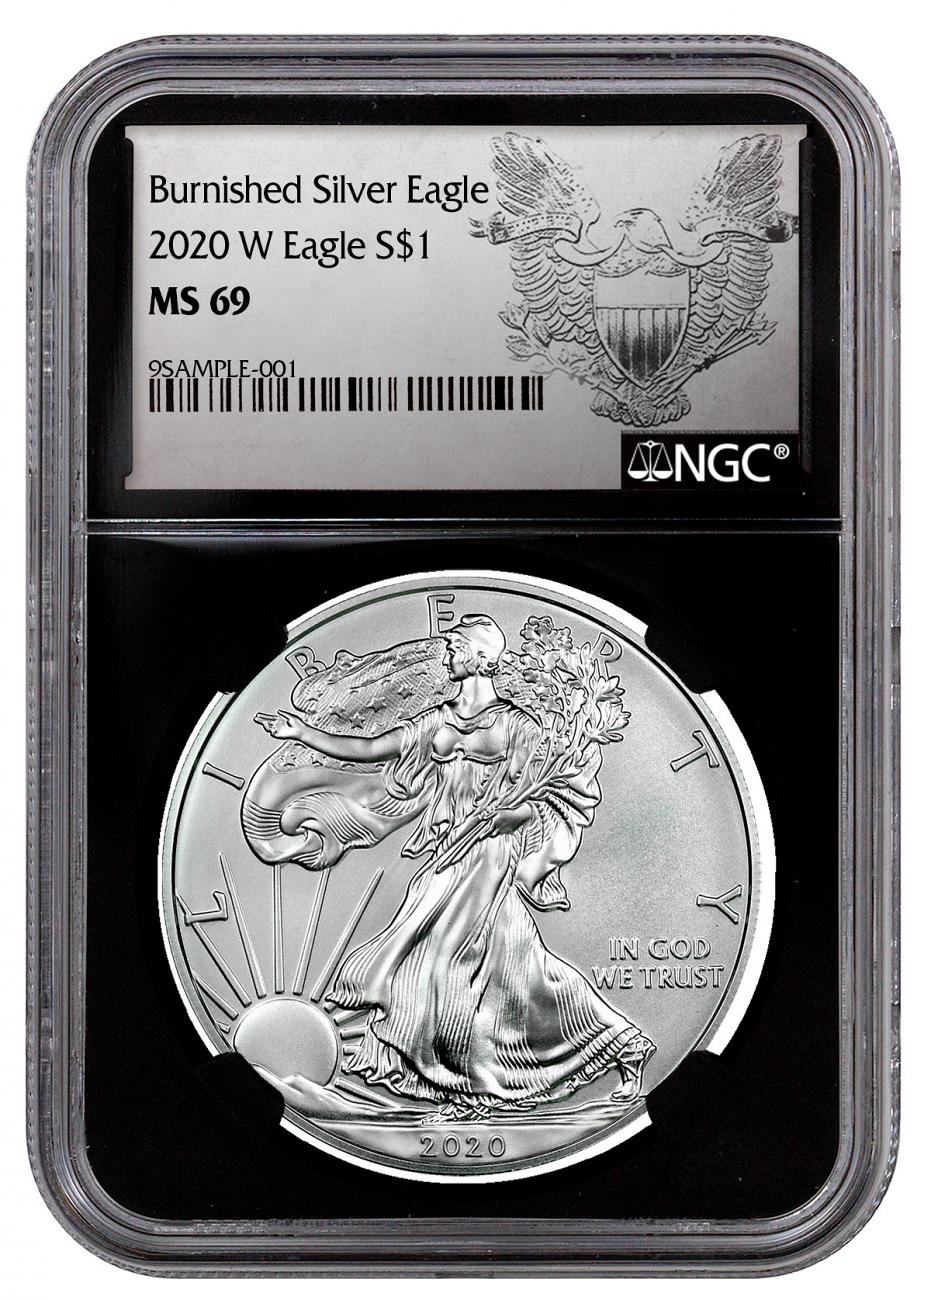 2020-W 1 oz Burnished American Silver Eagle $1 Coin NGC MS69 Black Core Holder Heraldic Eagle Label